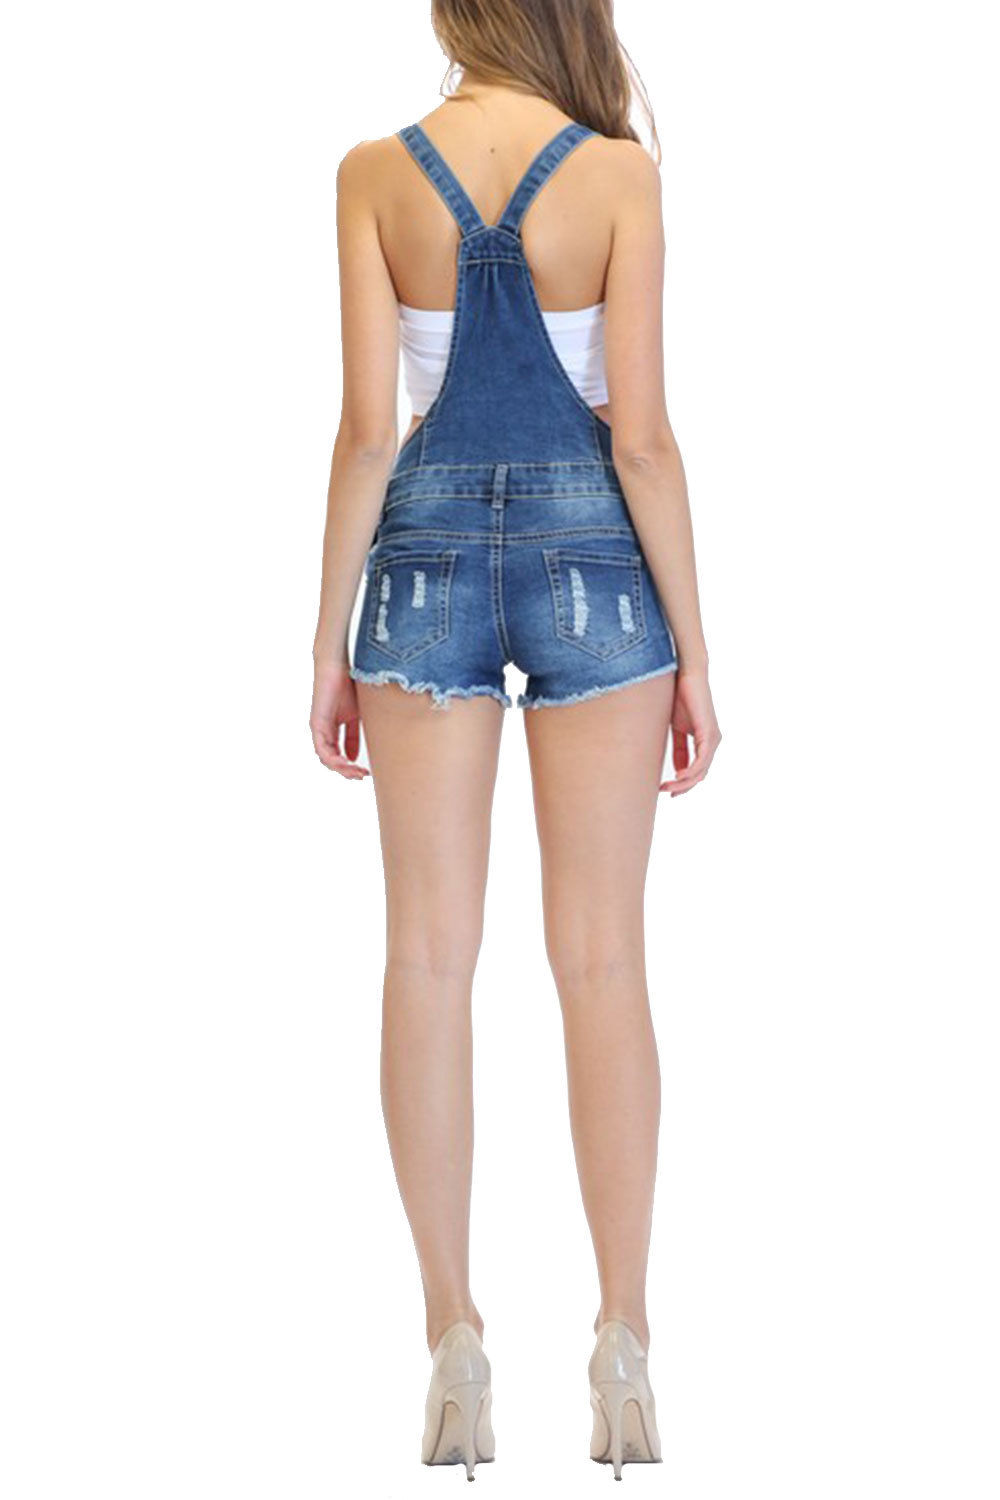 5c1ca2784 GENx - Womens Distressed Destroyed Denim Shorts Overall RJSO-608-M ...